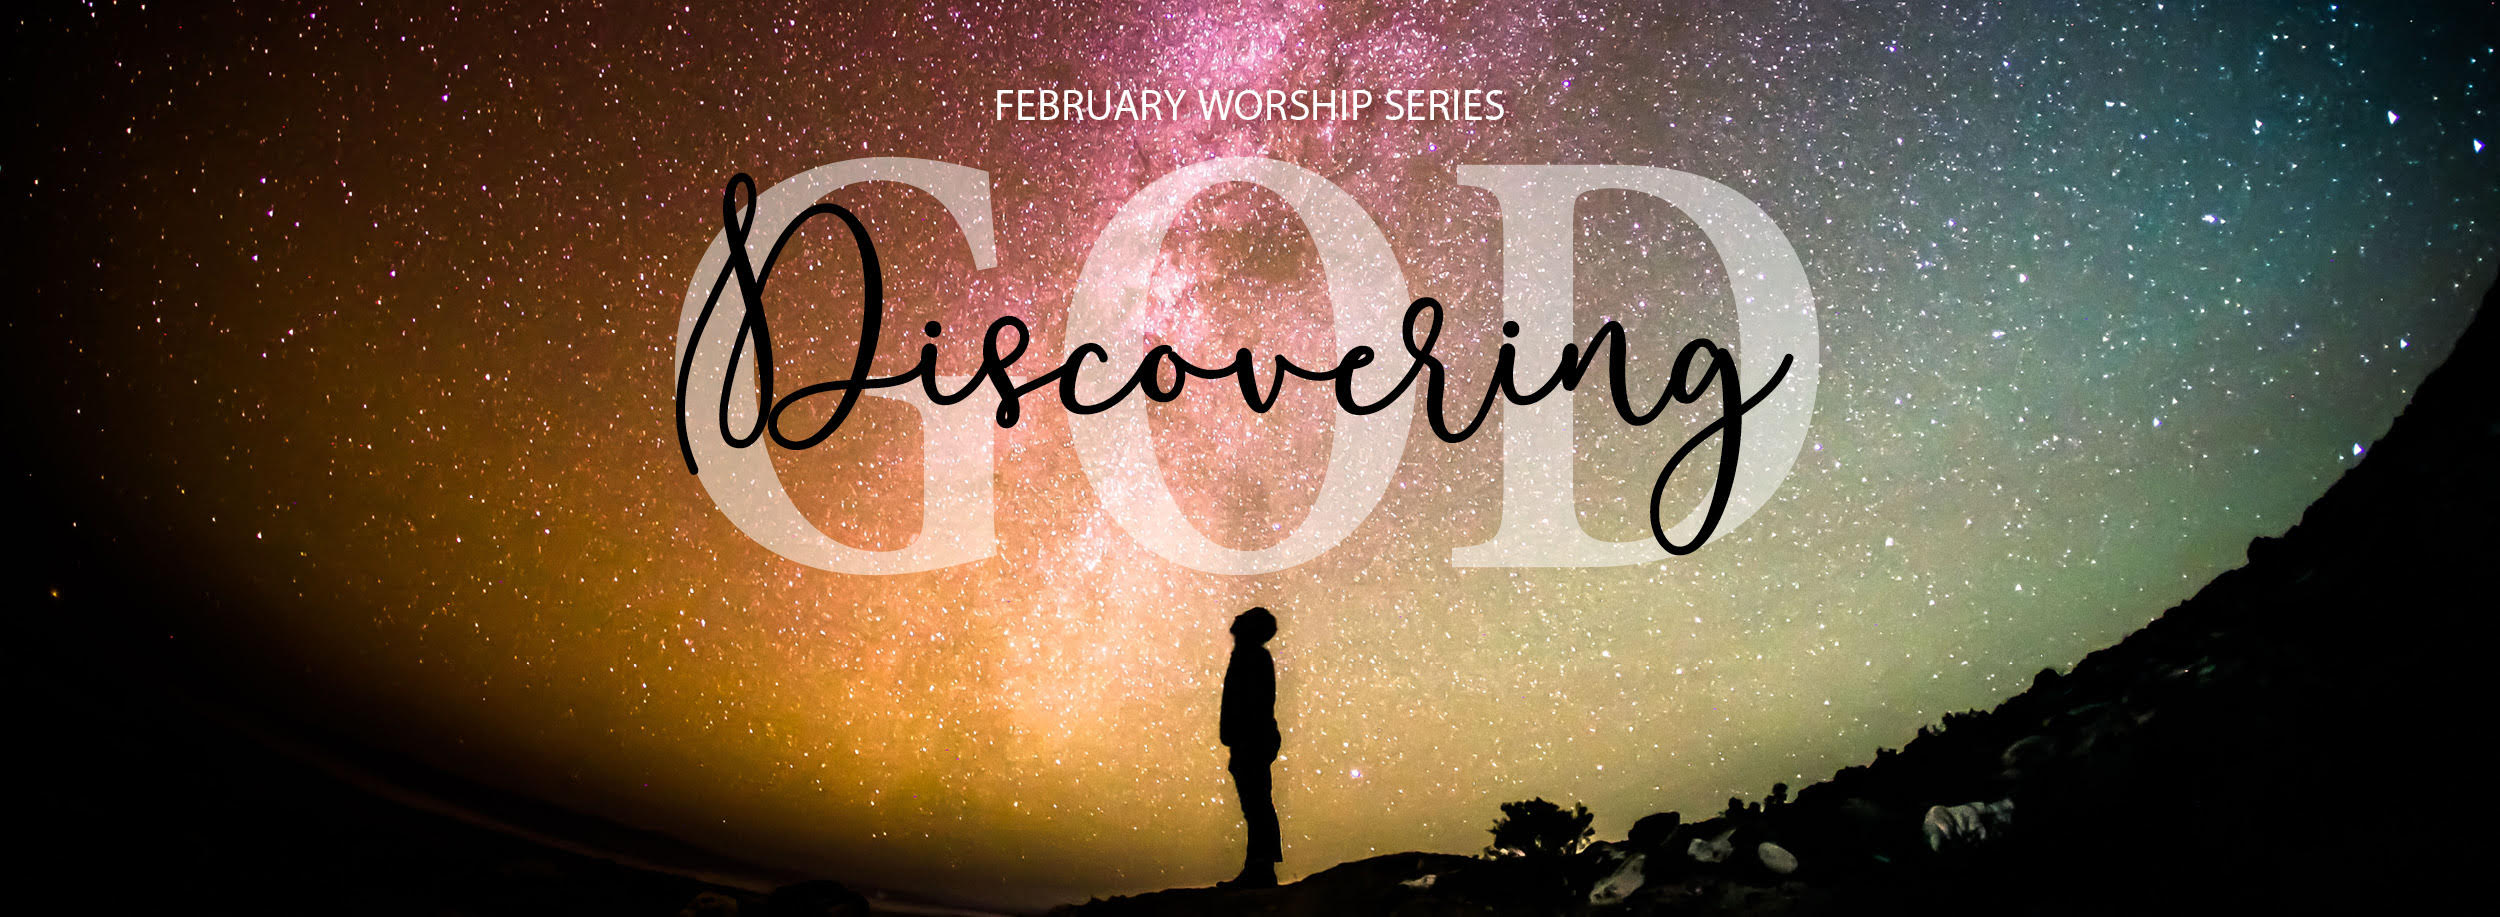 Discovering God Image